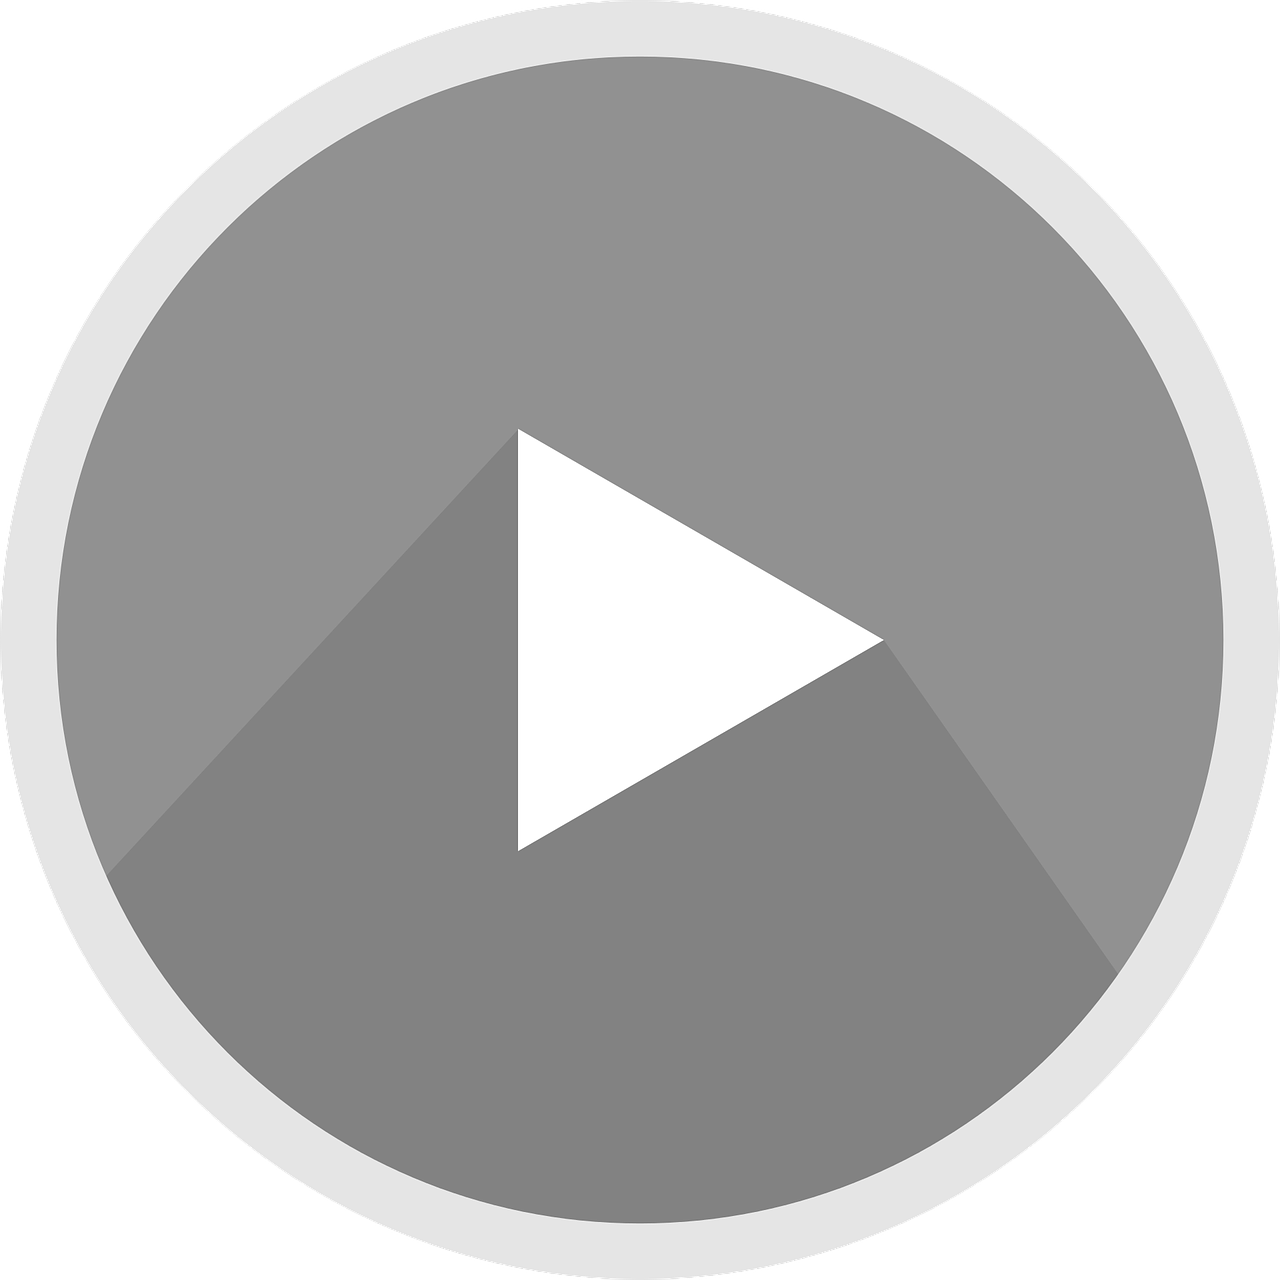 the-youtube-logo-3238901_1280.png